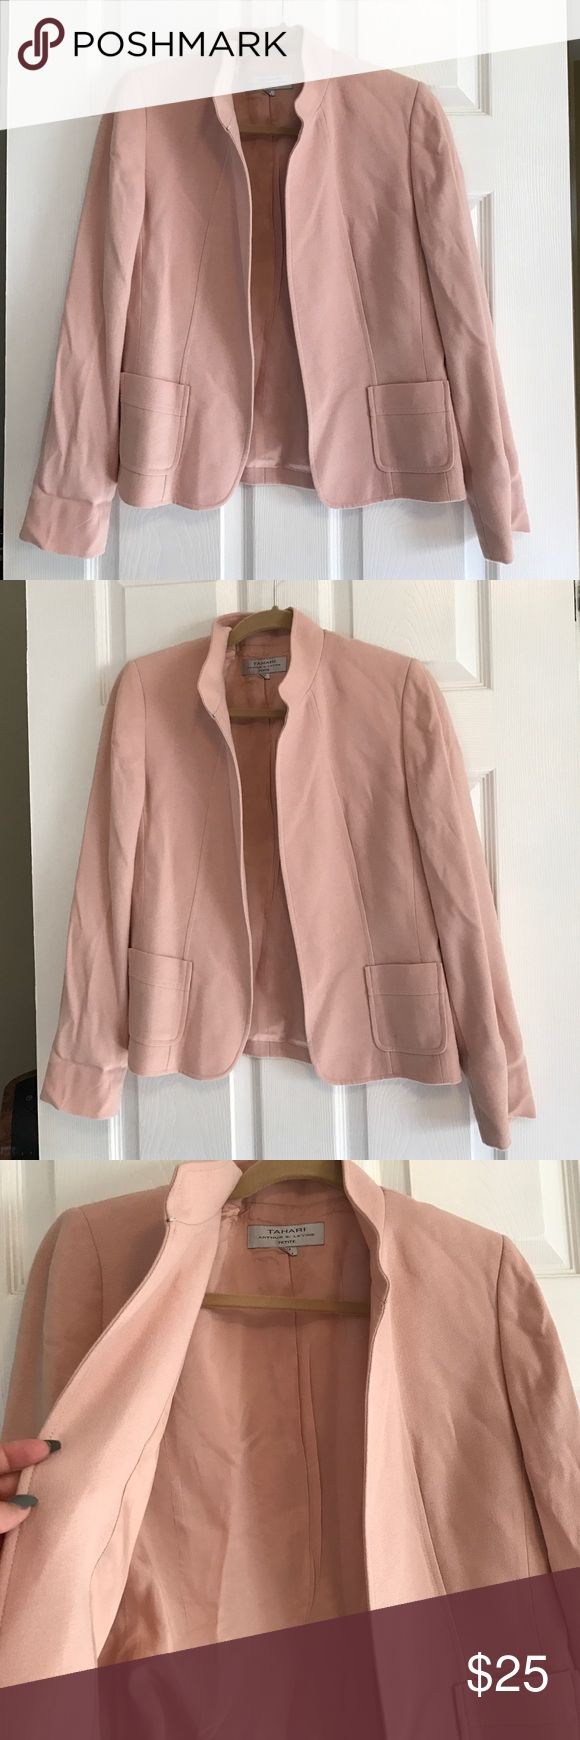 Tahari pink blazer Tahari pink blazer no buttons petite size 8 great condition no damage no stains two small pockets in front Tahari Jackets & Coats Blazers